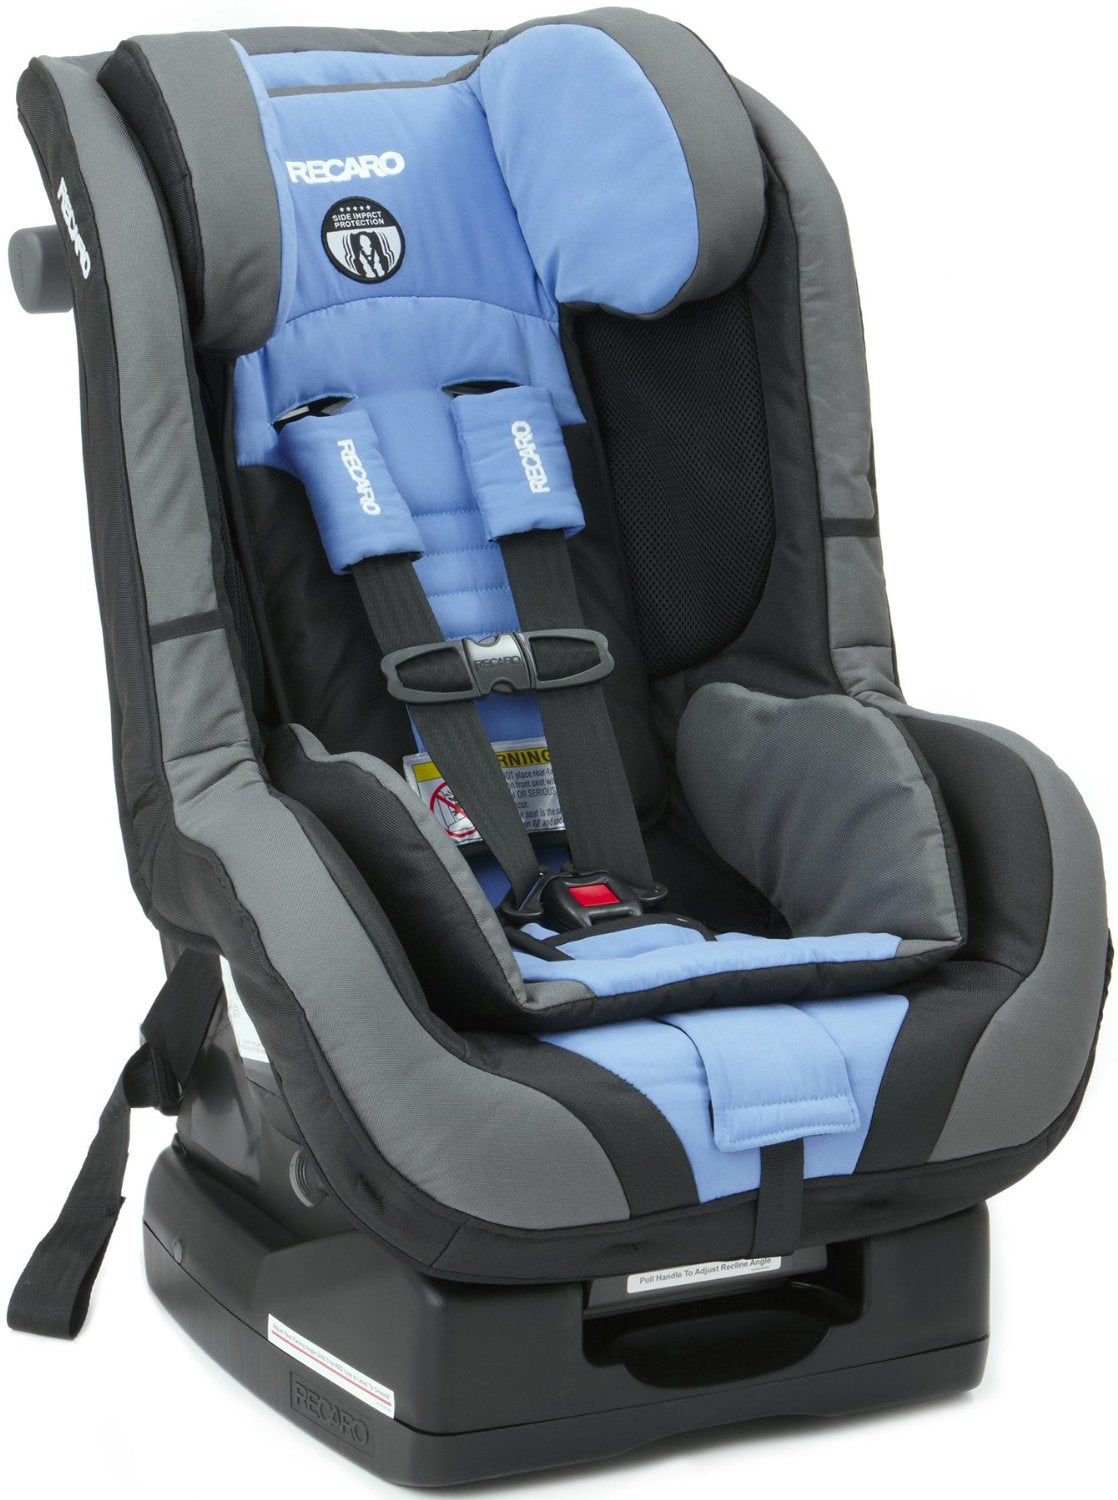 Car Seat, Baby Car Seats Guide What To Buy